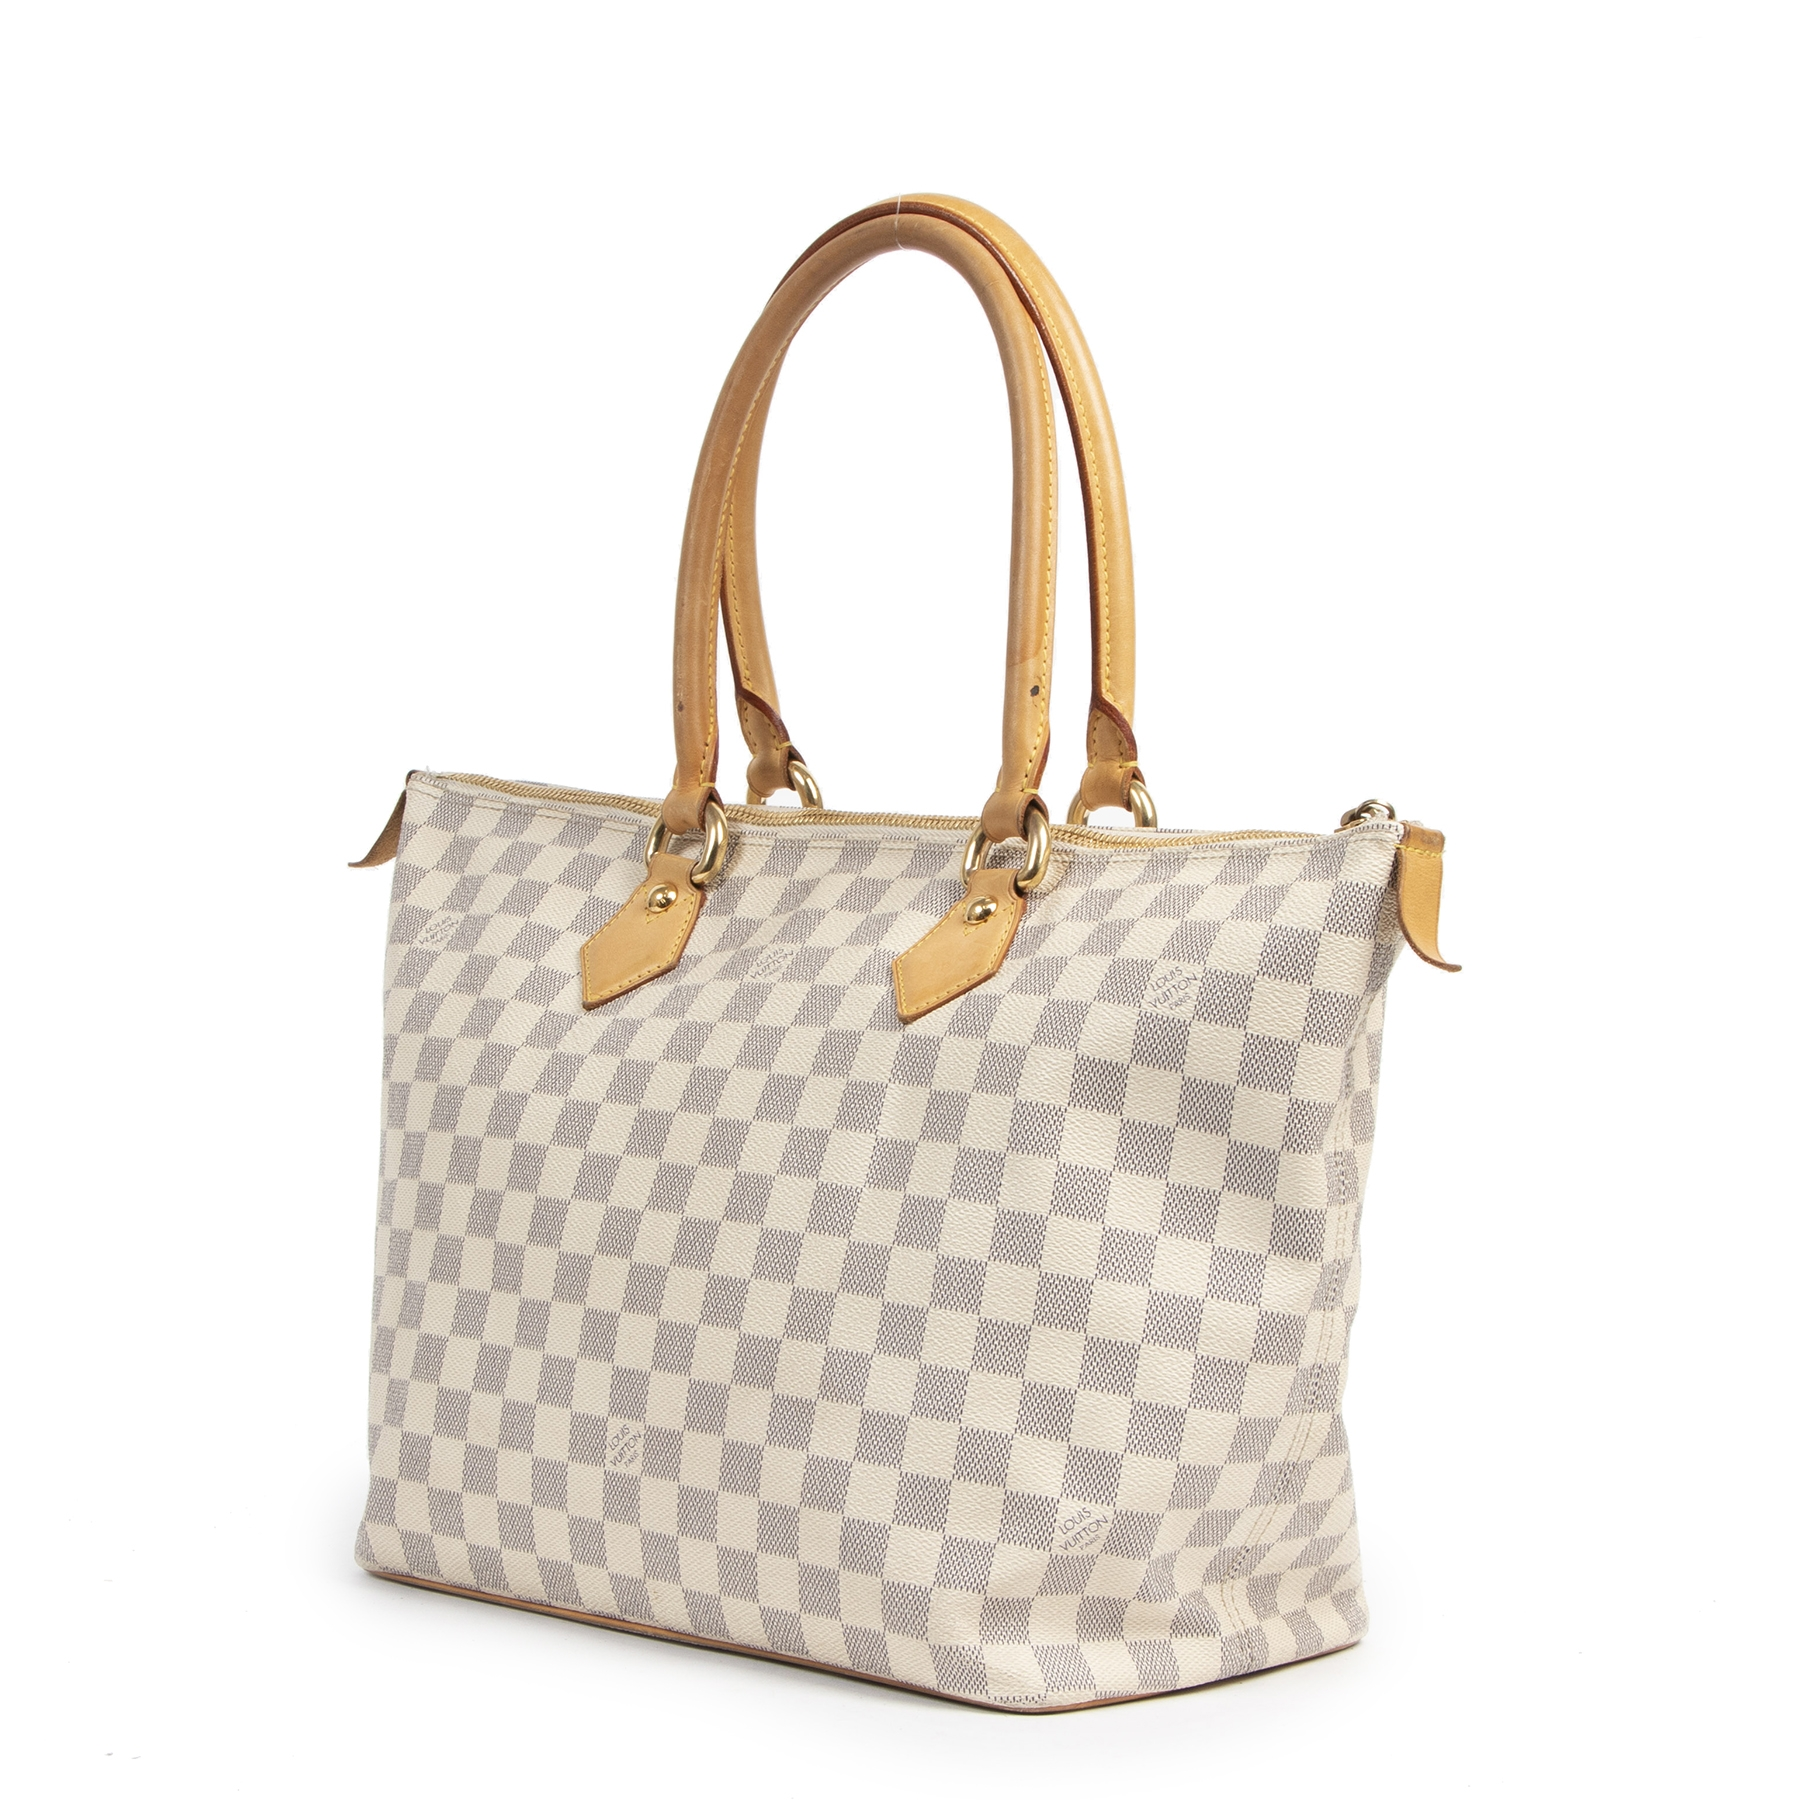 Louis Vuitton Damier Azur Saleya Shoulder Bag online available at Labellov secondhand luxury